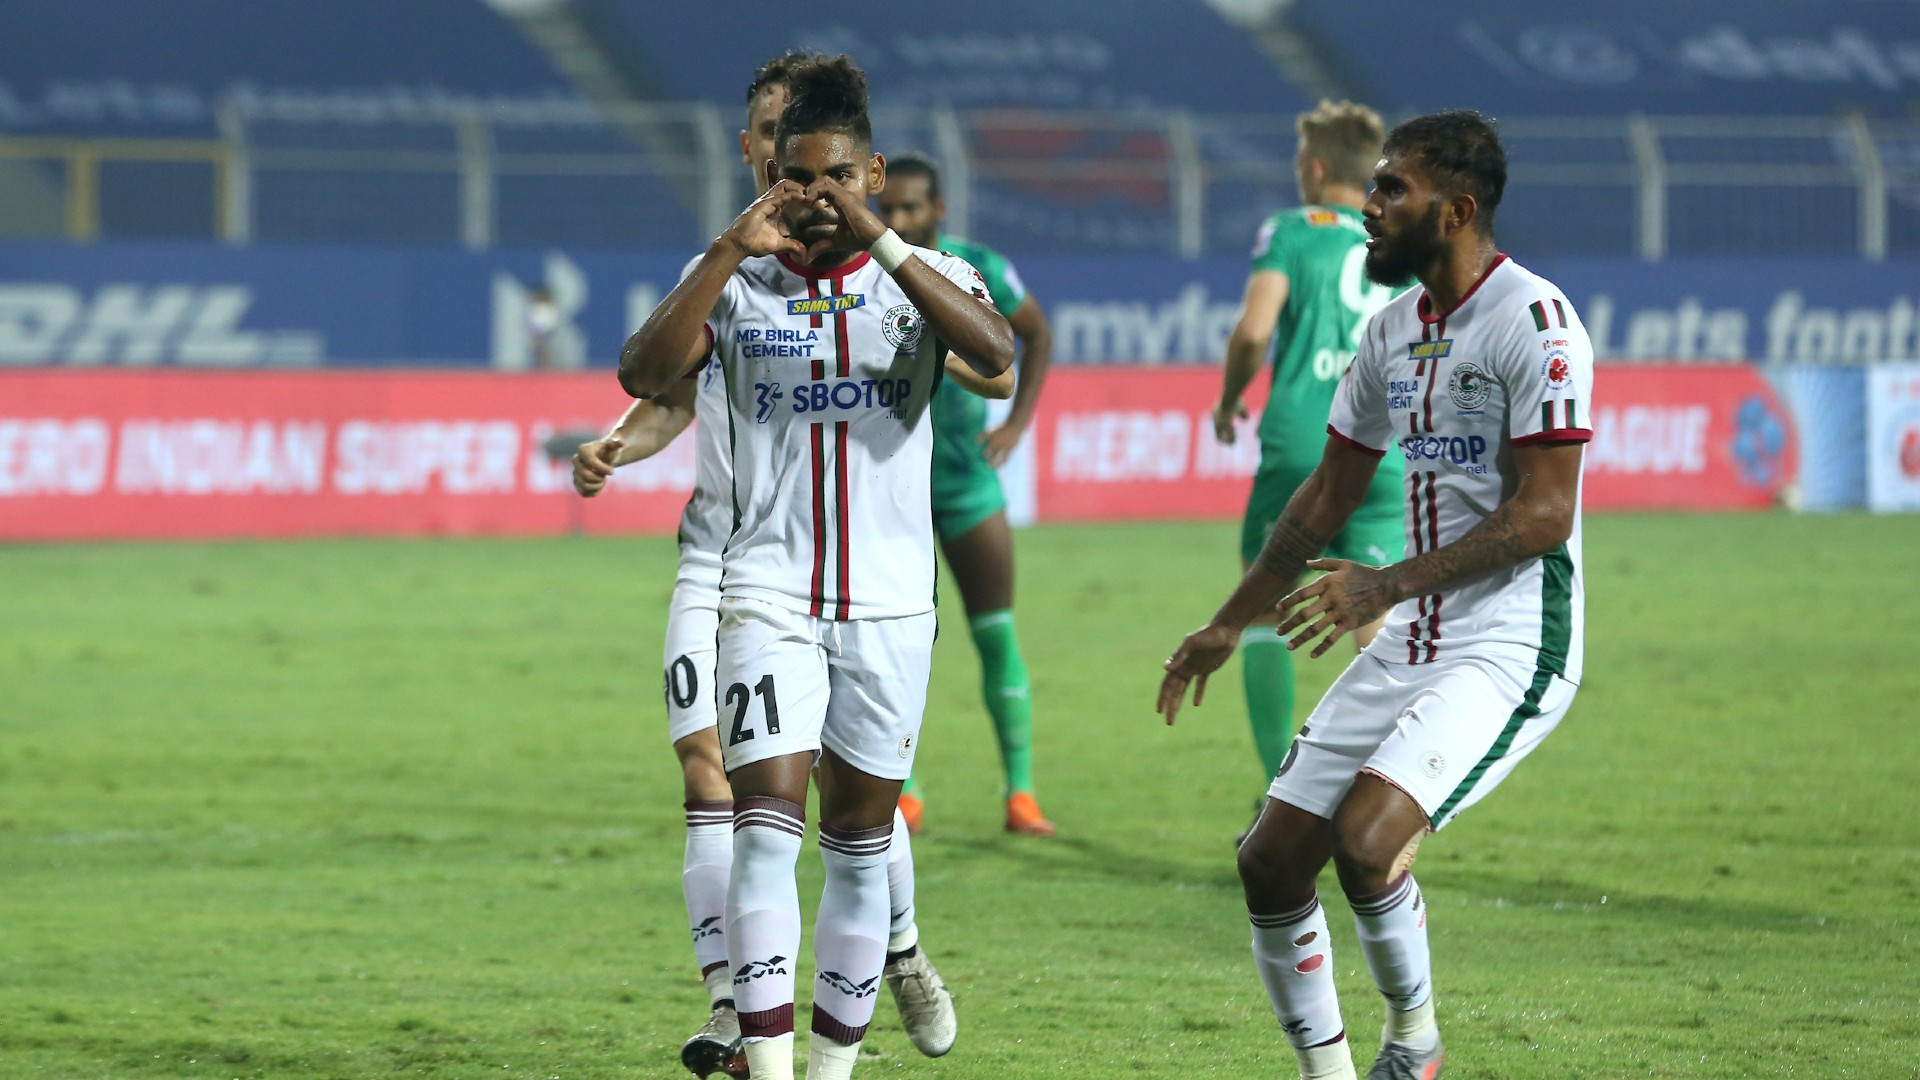 Marcelinho sets perfectly in ATK Mohun Bagan's attack as league stage title race hots up